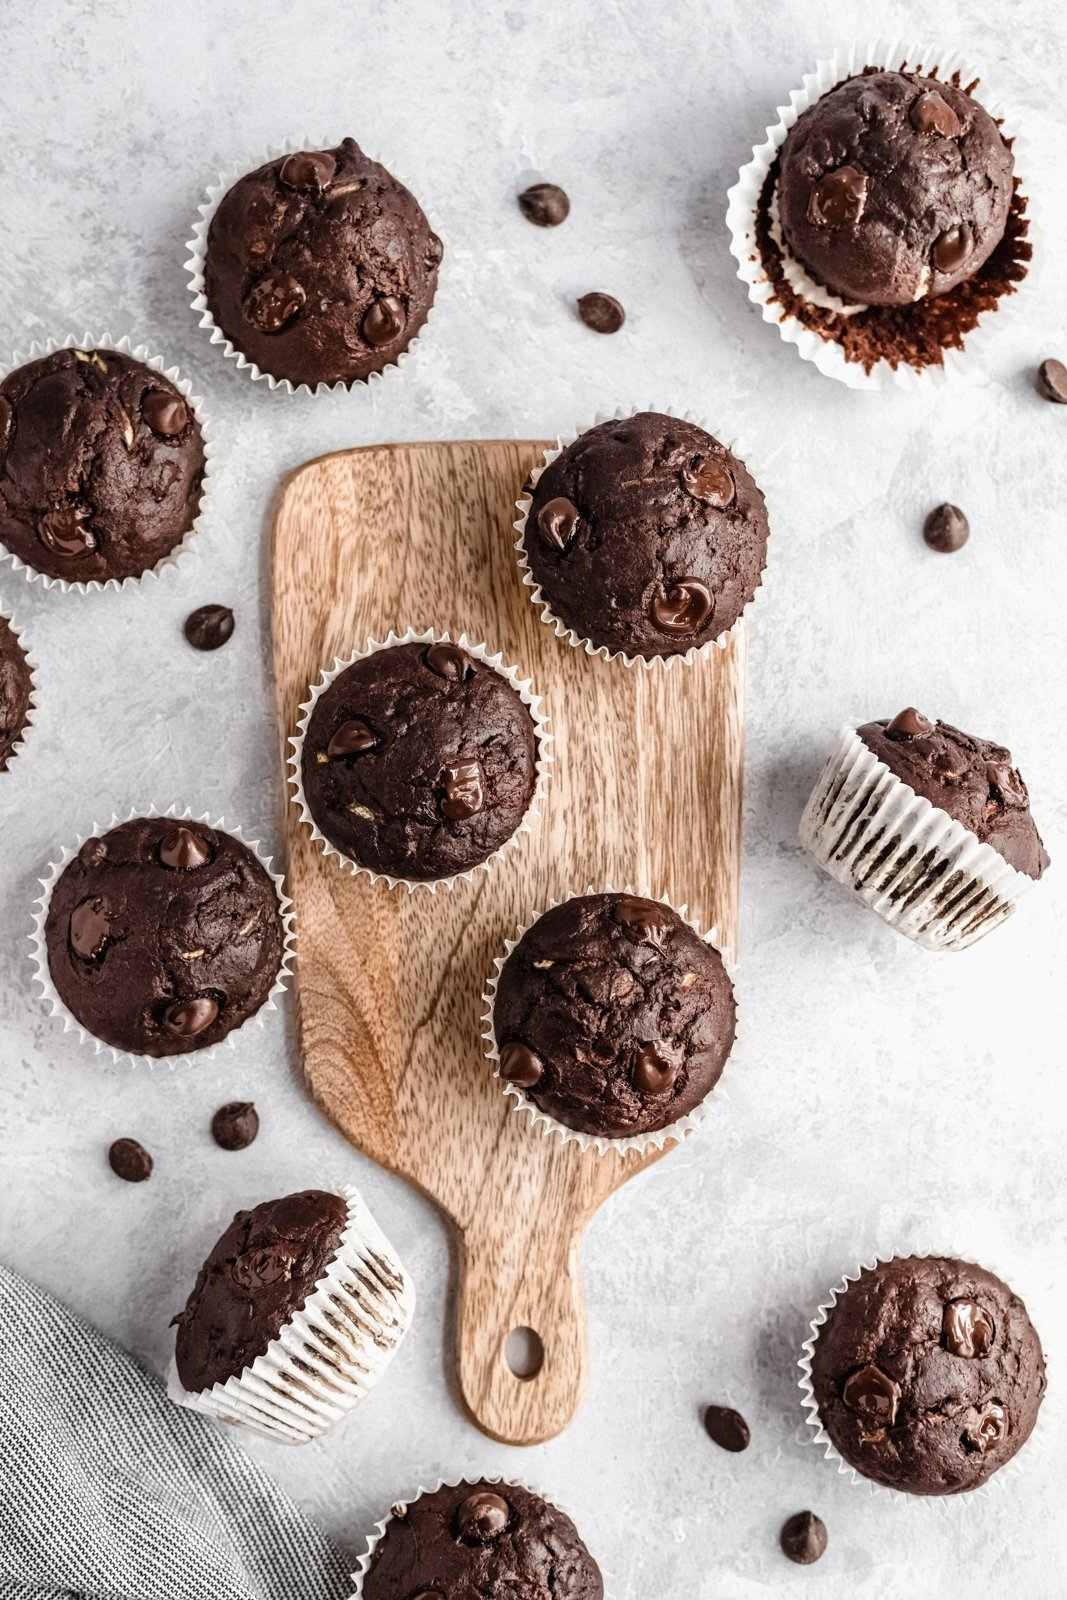 healthy chocolate banana zucchini muffins on a wooden board